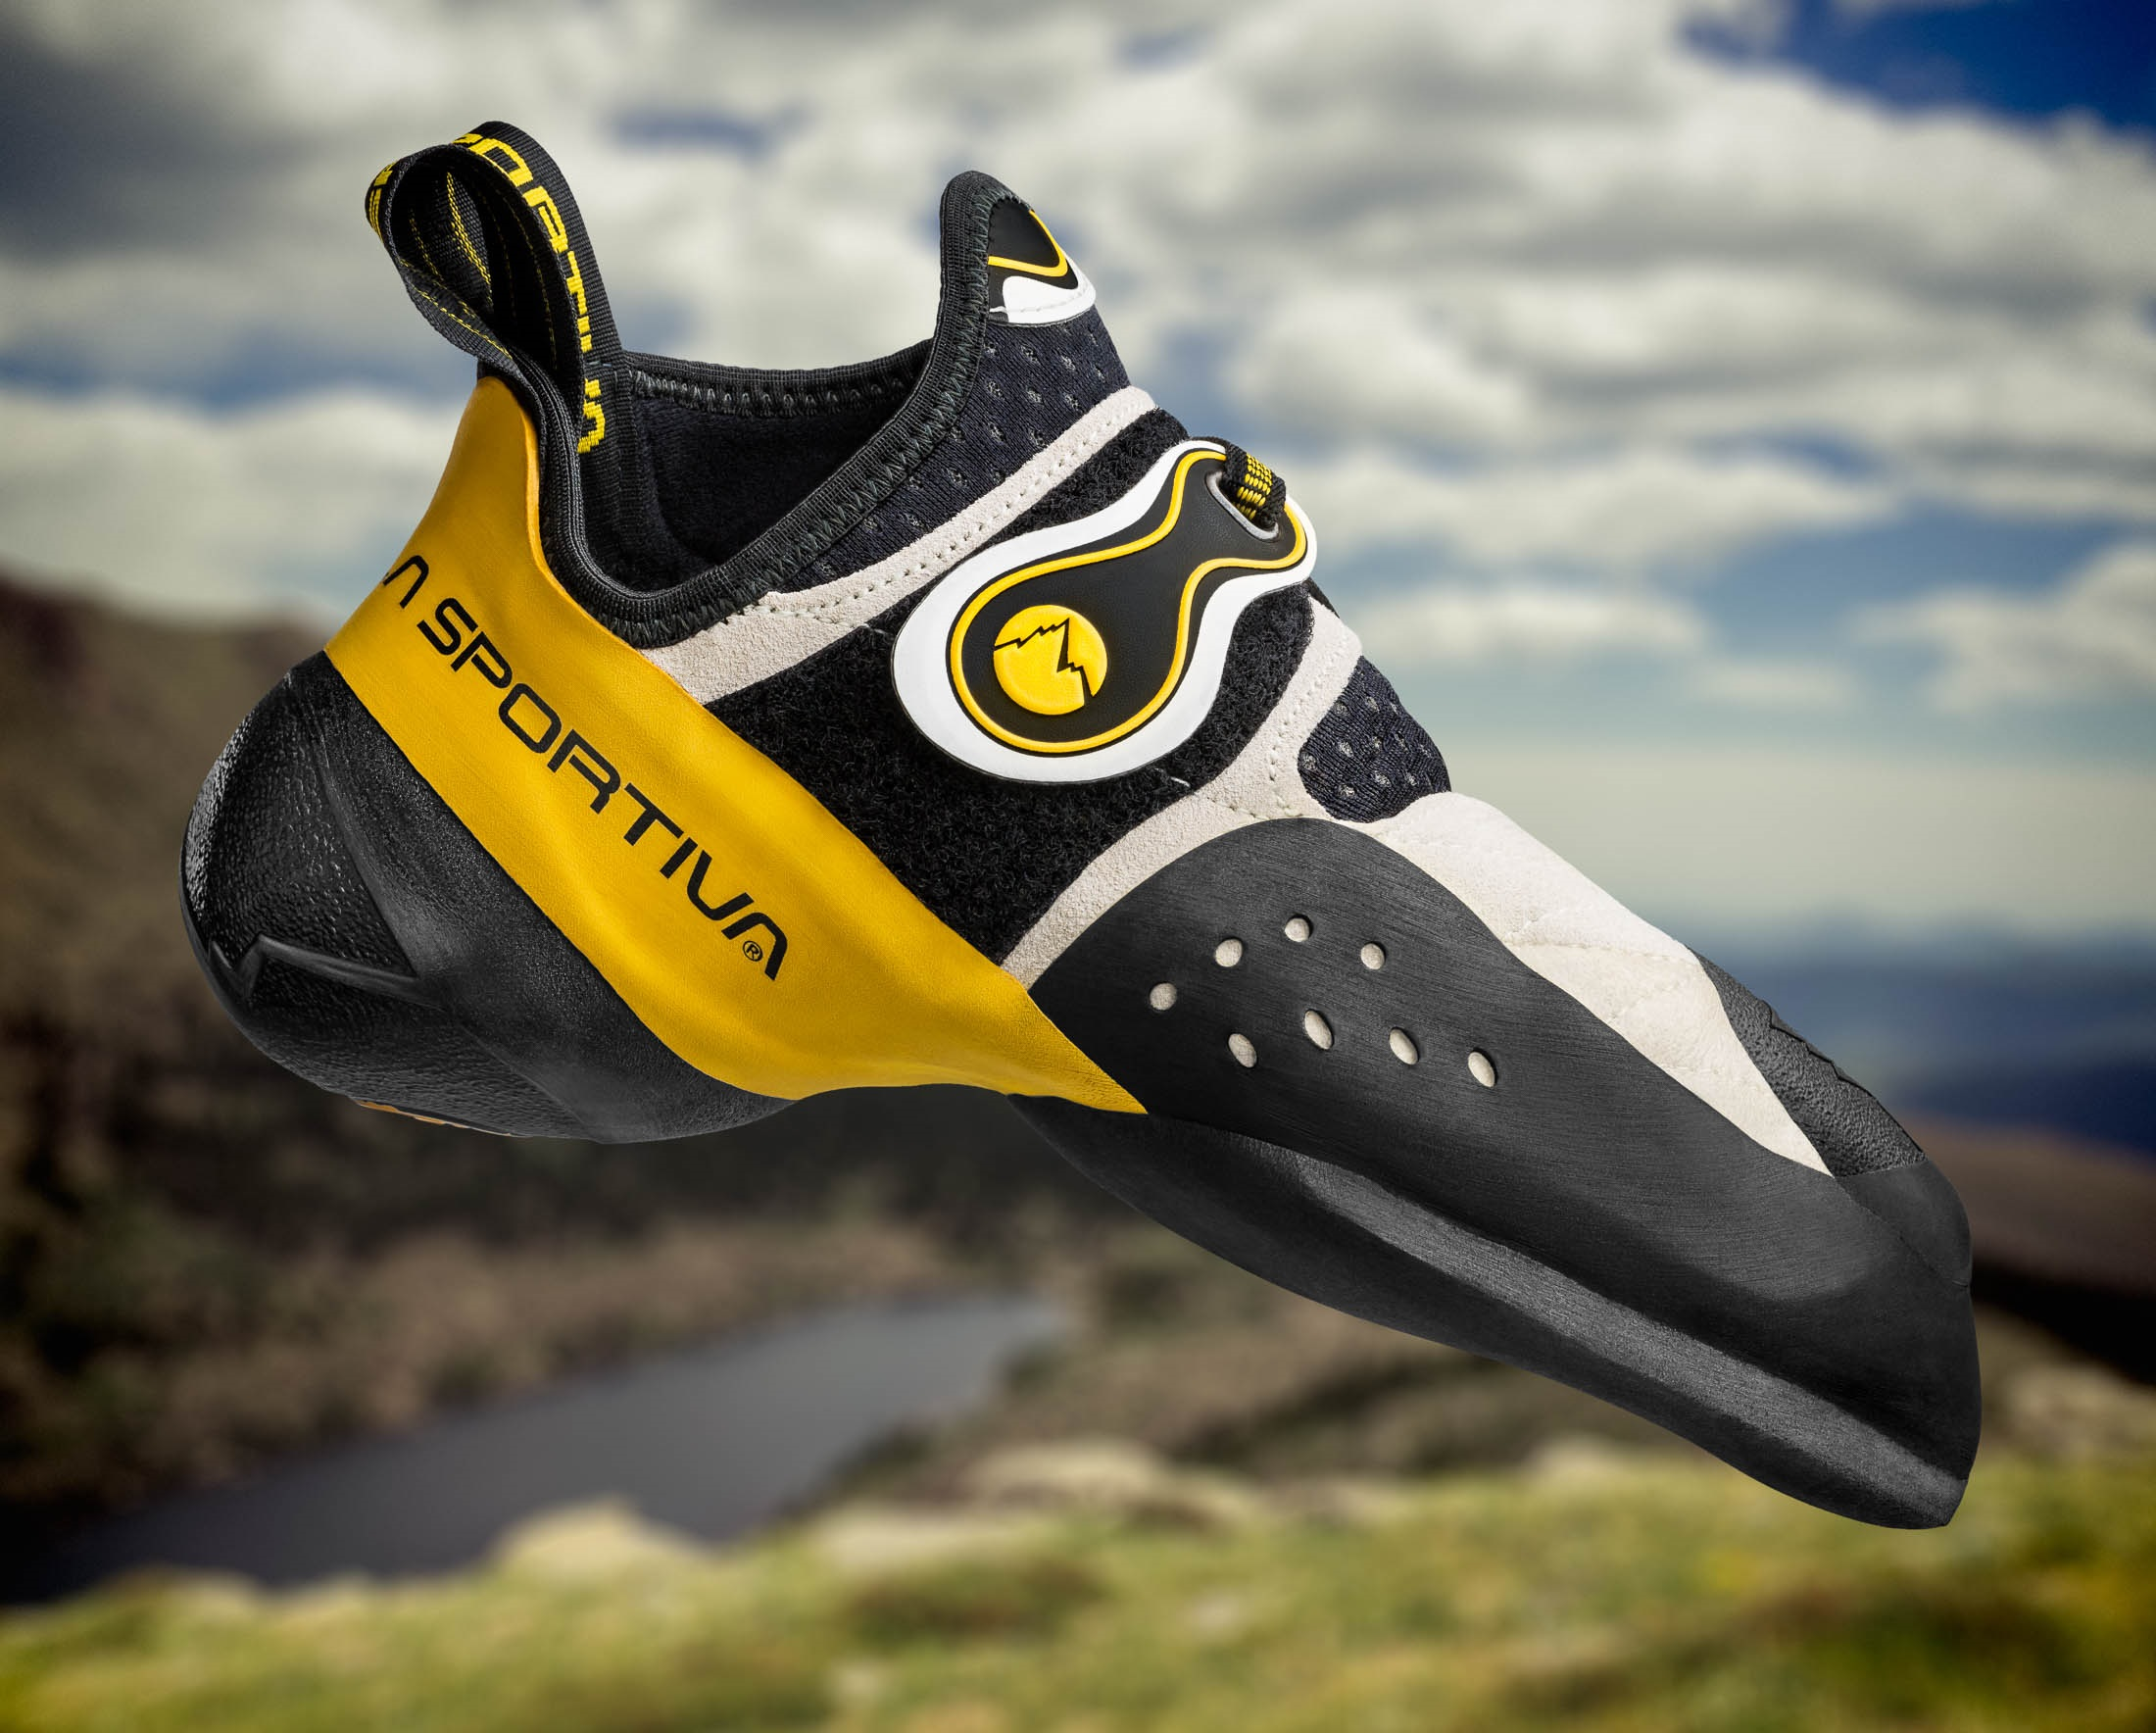 Lezečky La Sportiva Solution detail